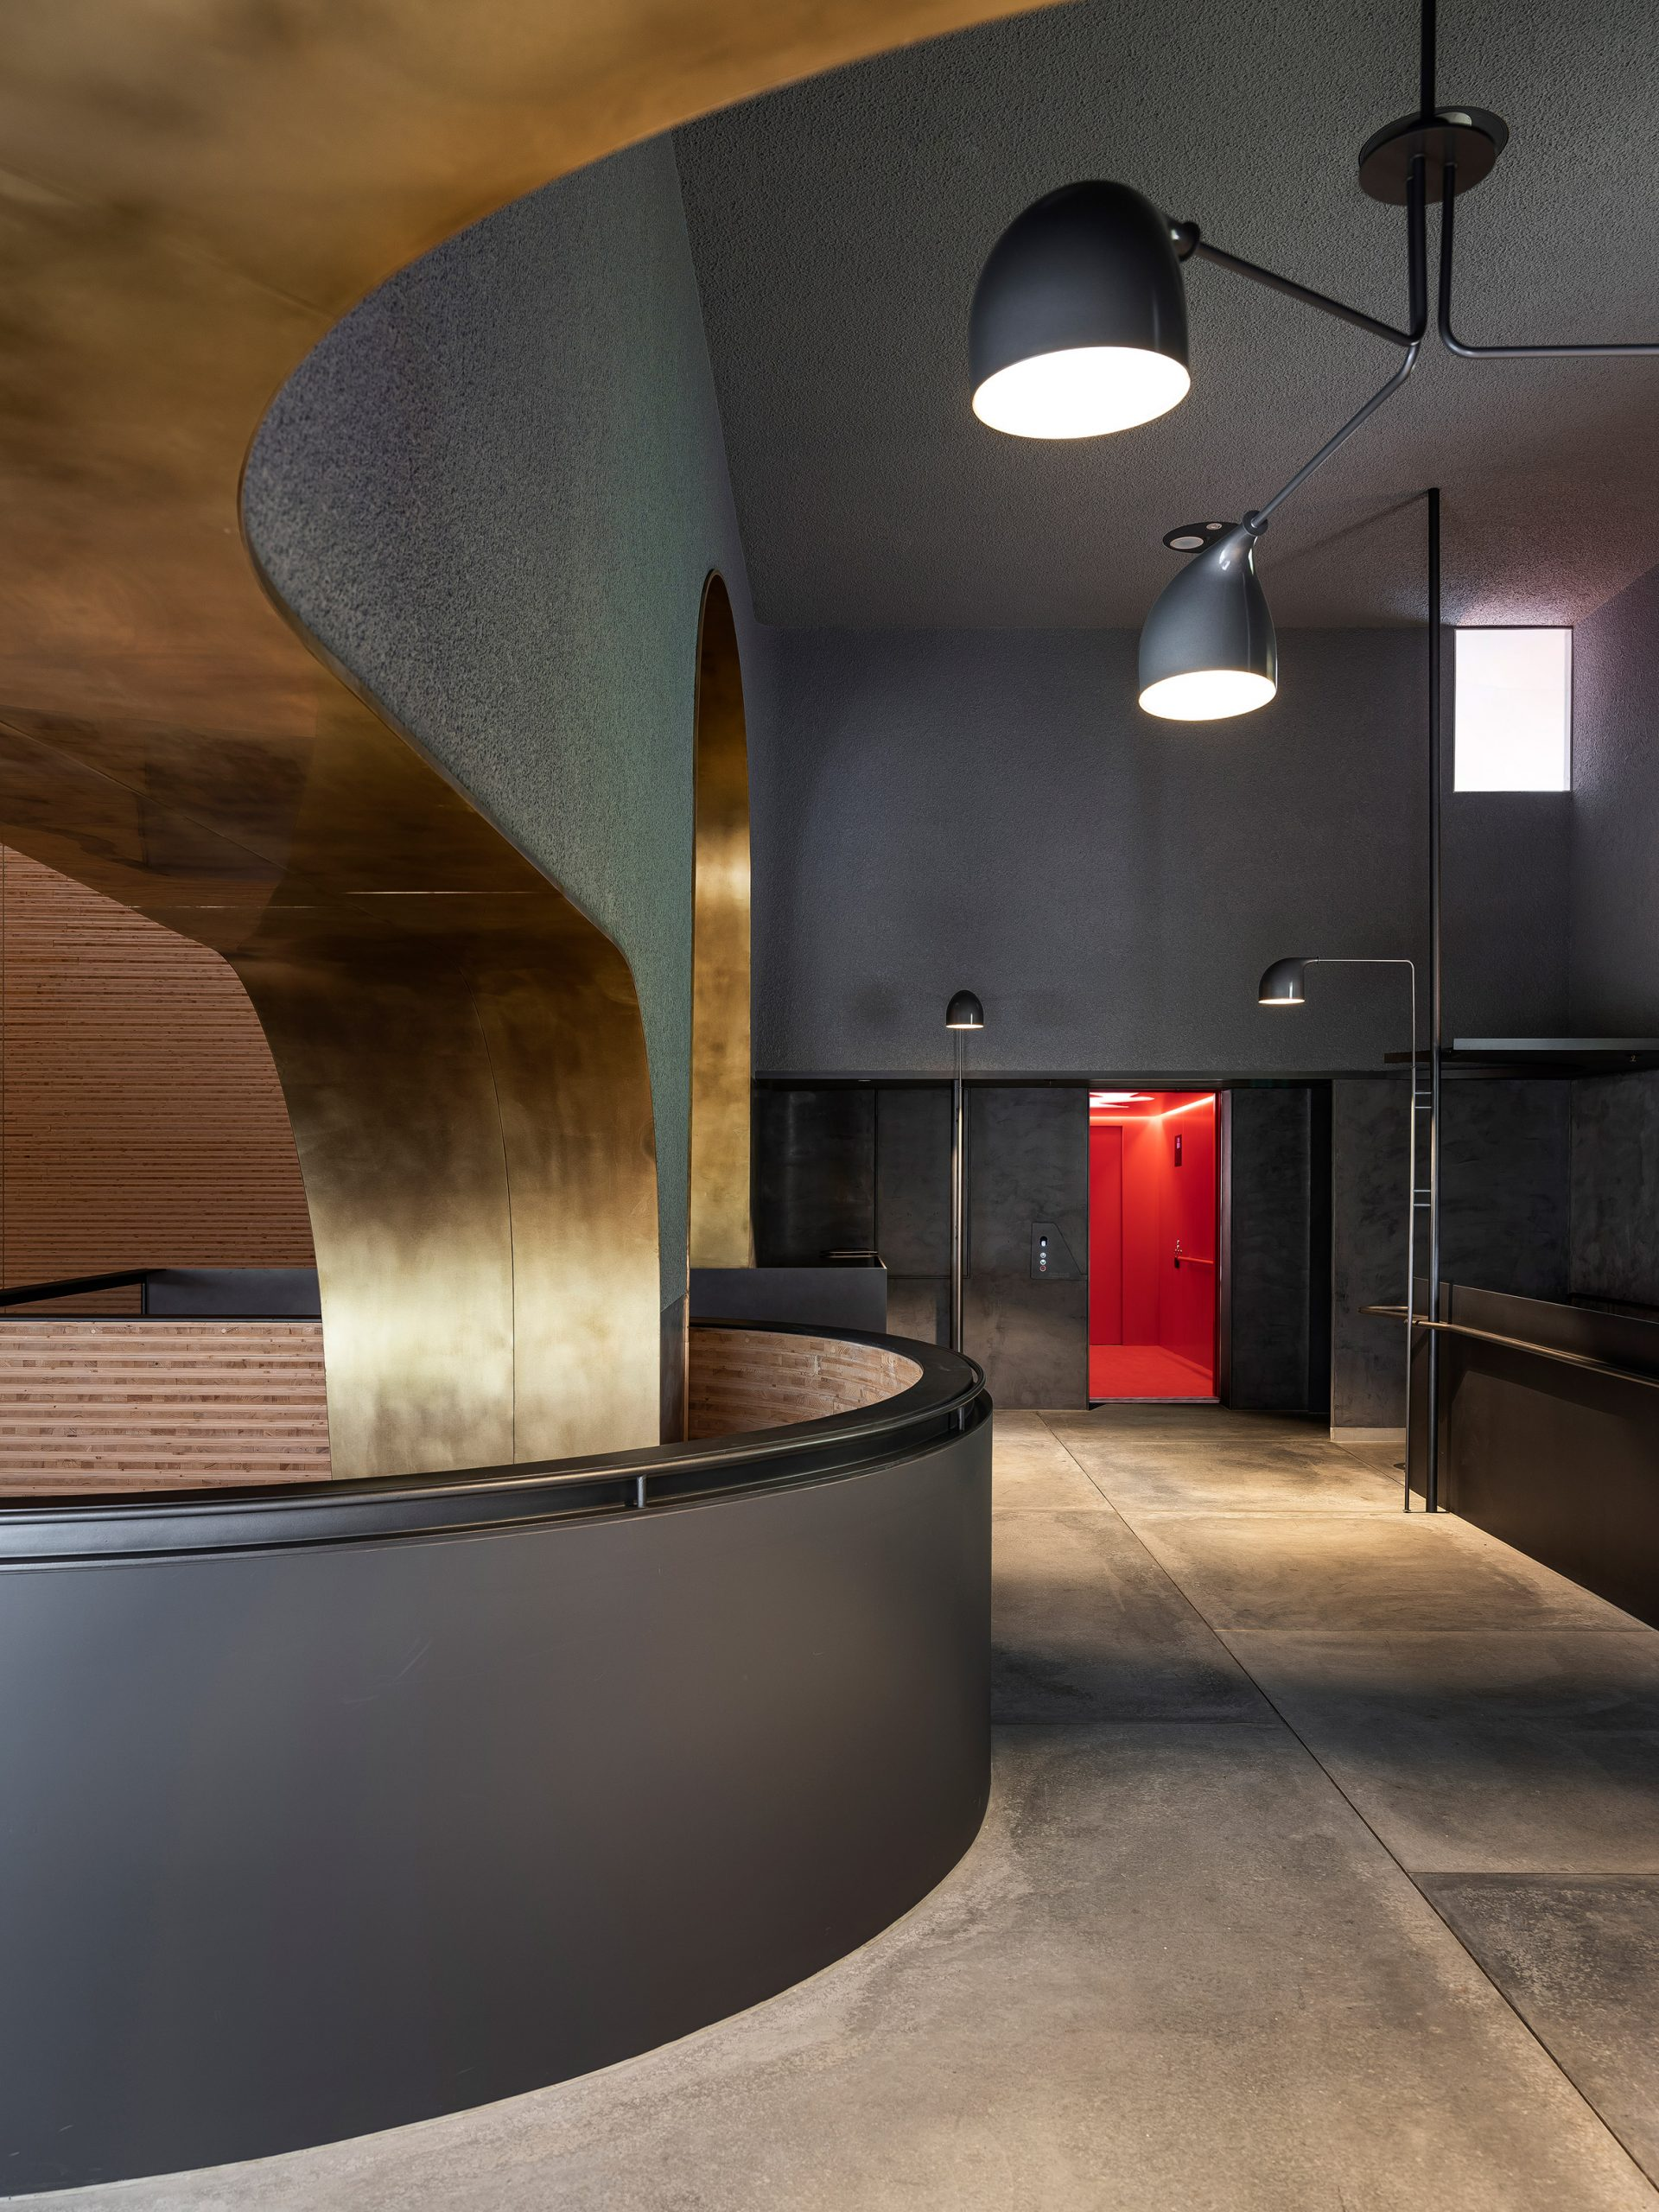 Phoenix Central Park gallery and performance space by Durbach Block Jaggers and John Wardle Architects in Sydney, Australia